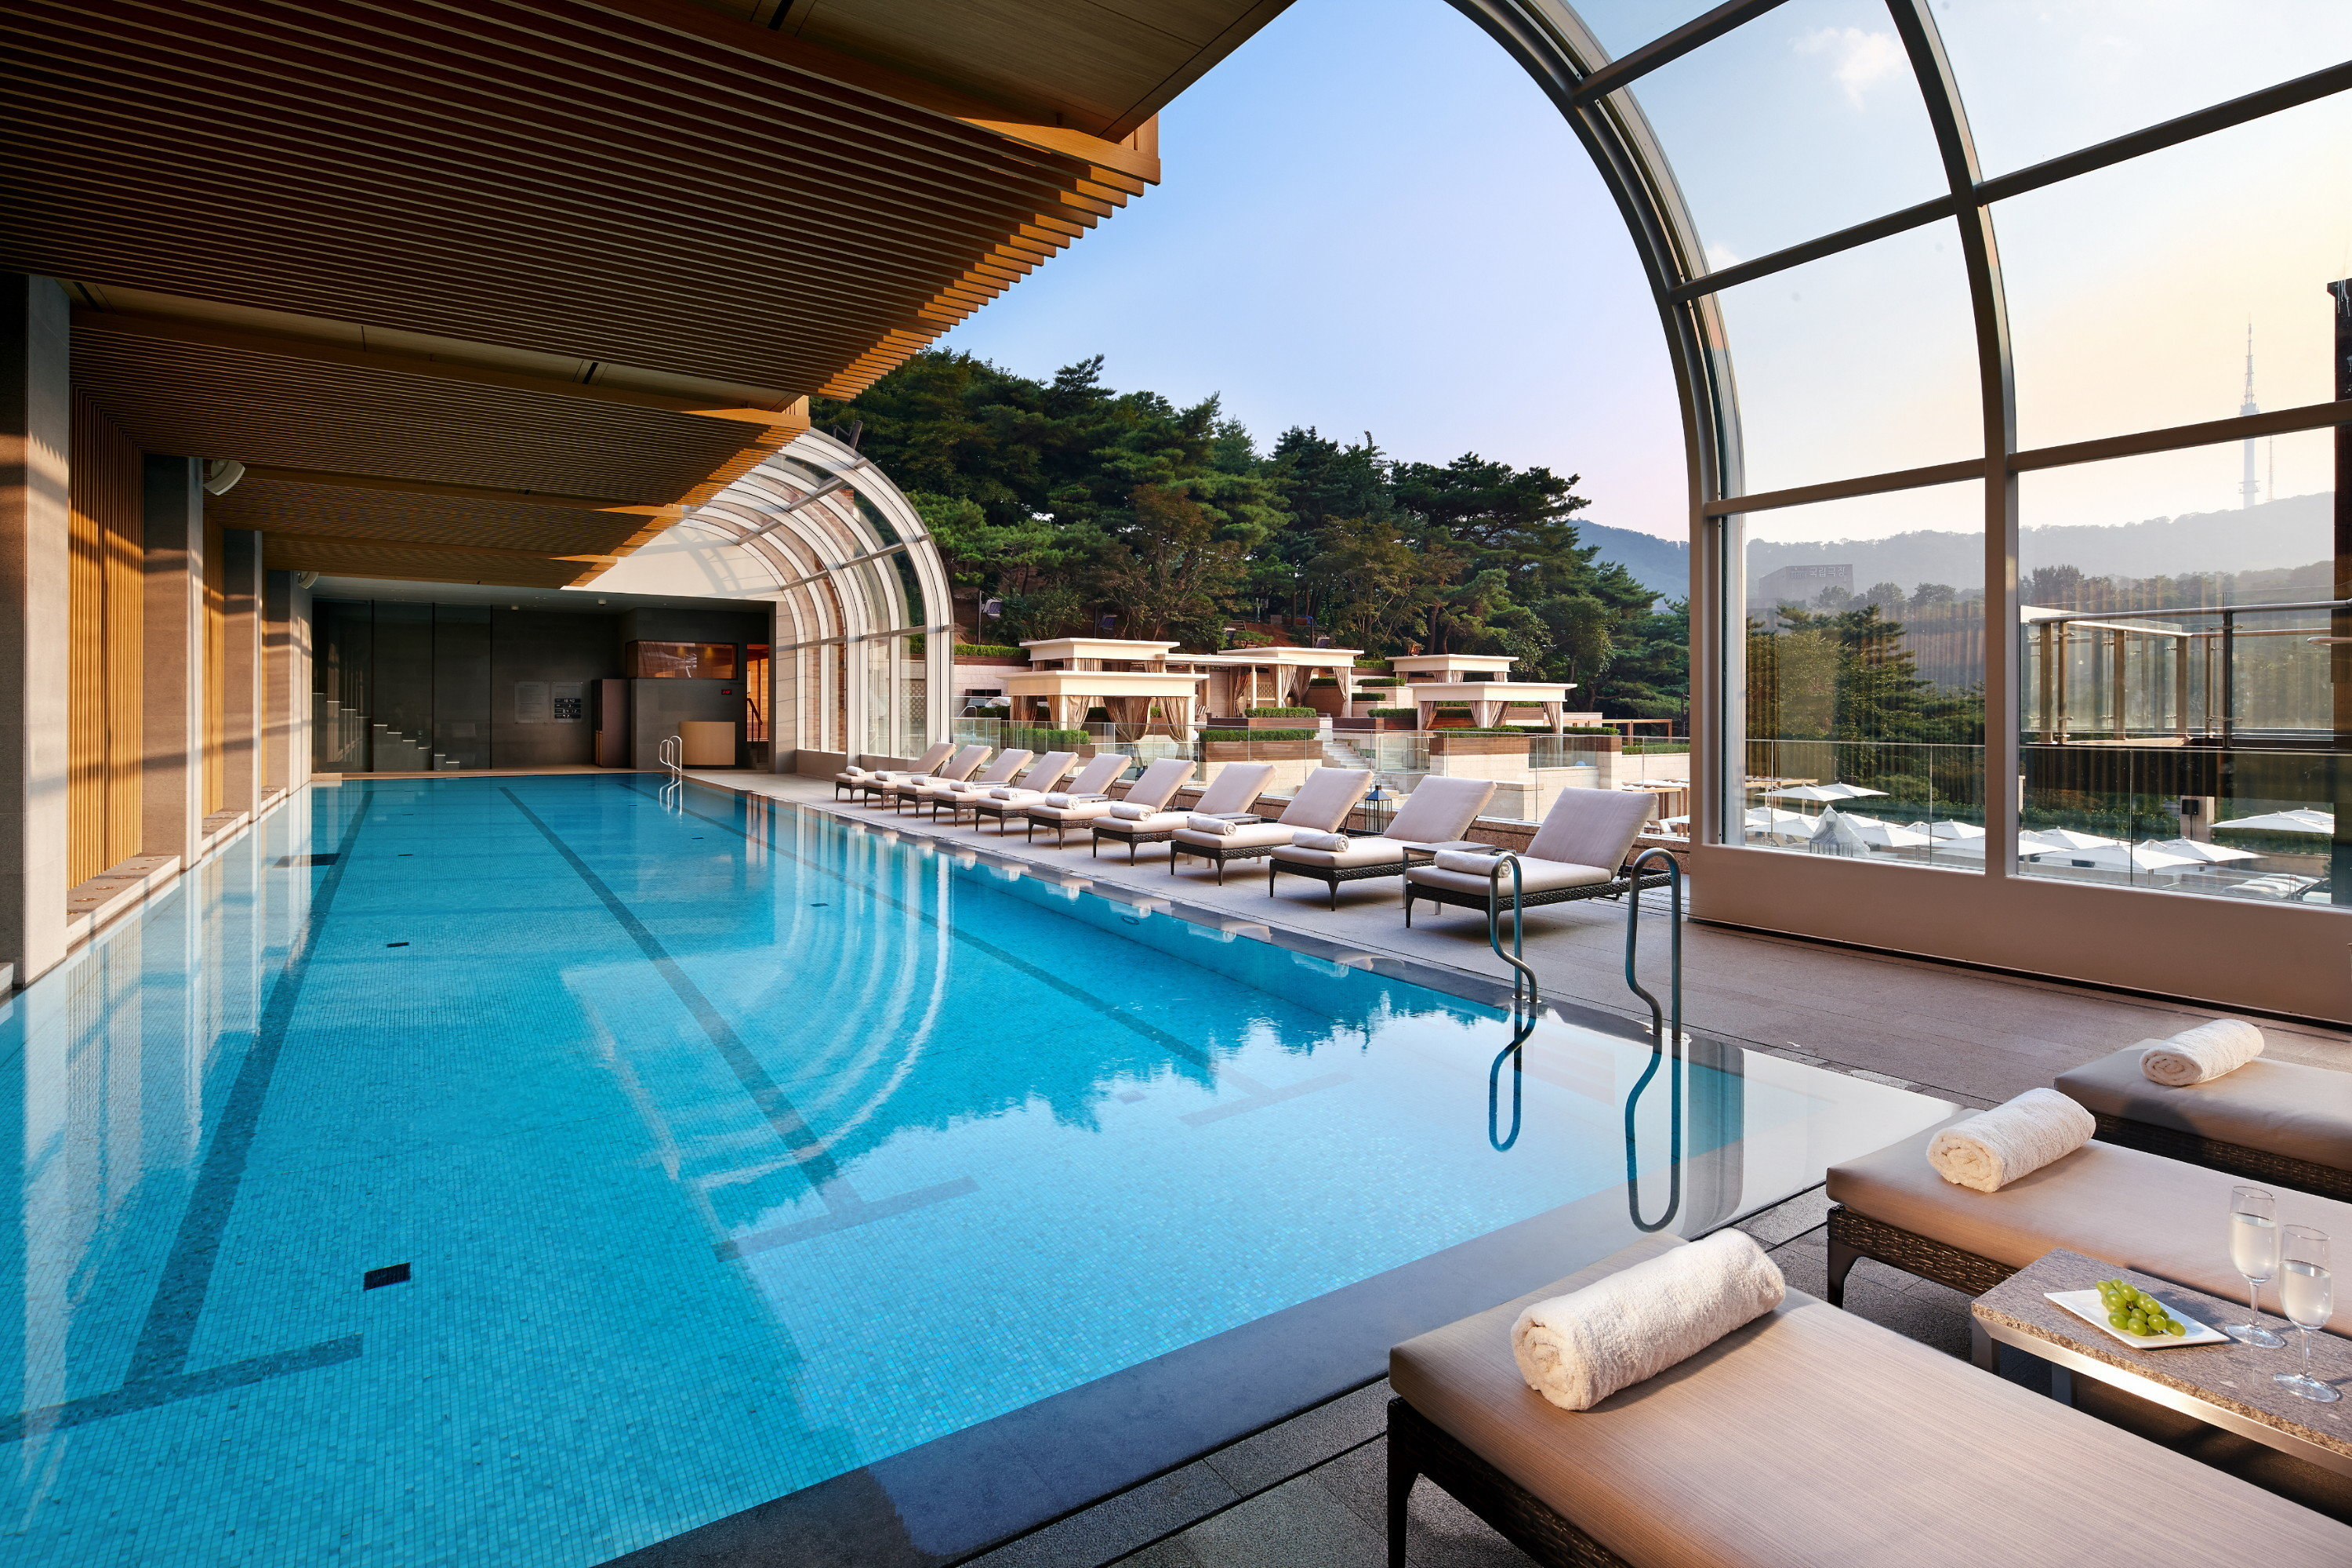 Hotels Luxury Travel Swimming Pool Property Leisure Resort Centre Real Estate Water Town